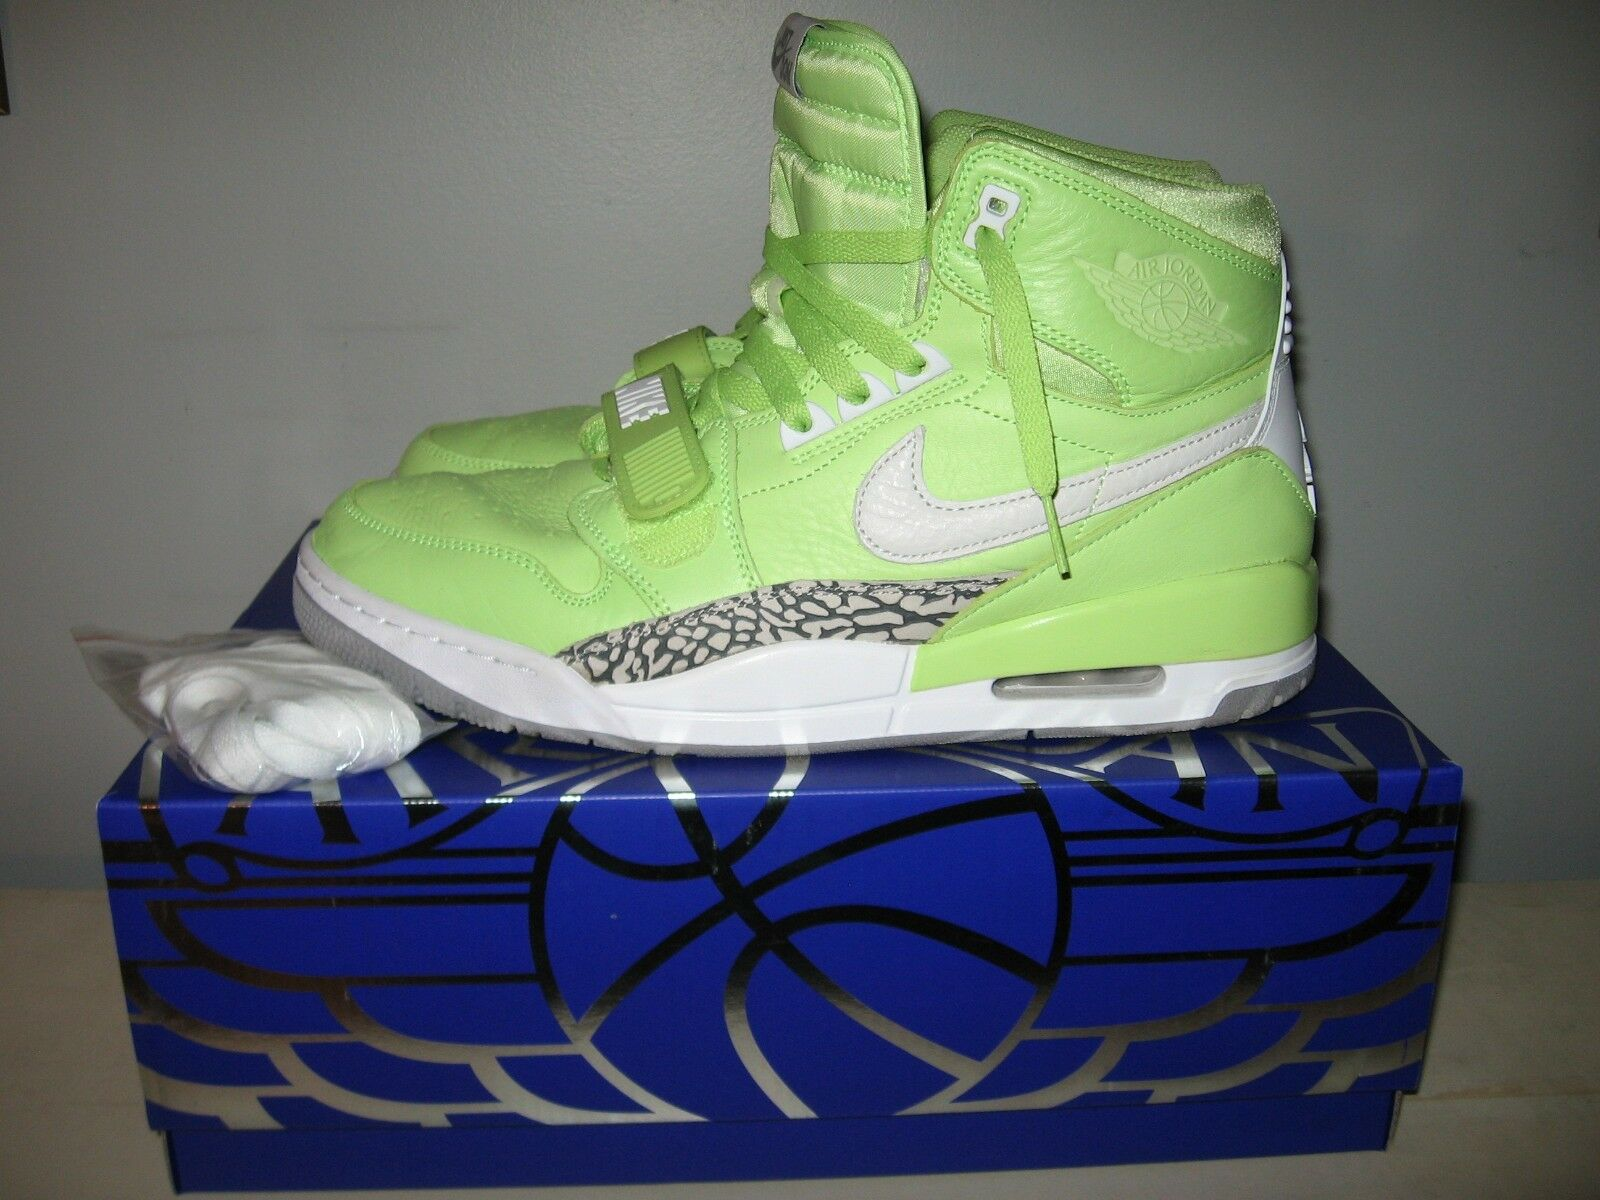 Nike AIR JORDAN LEGACY 312 NRG Size 12 Ghost Green  White Cement Just Don w  Box